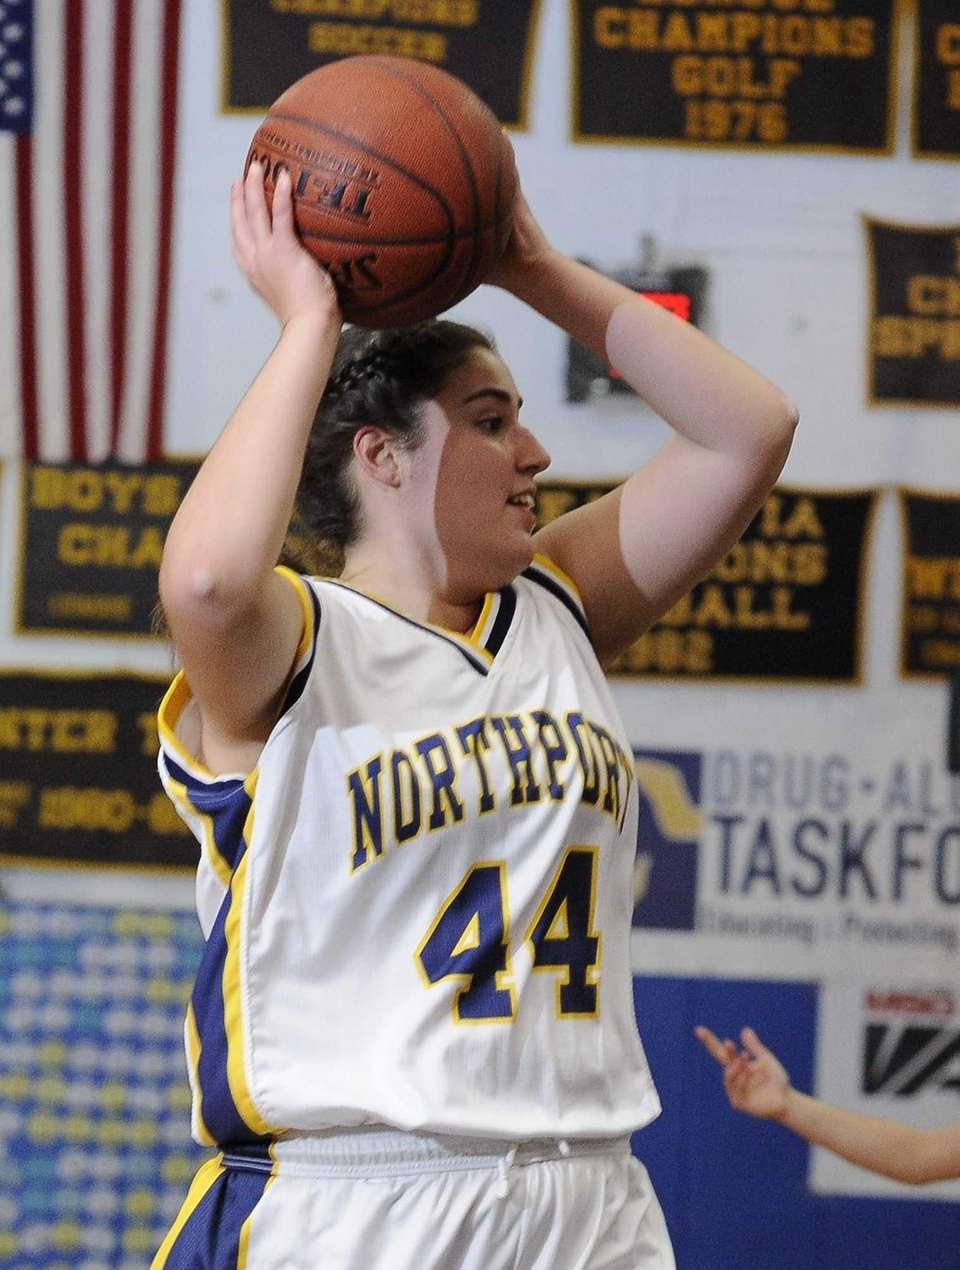 Northport's Allie Clarke looks to pass the ball